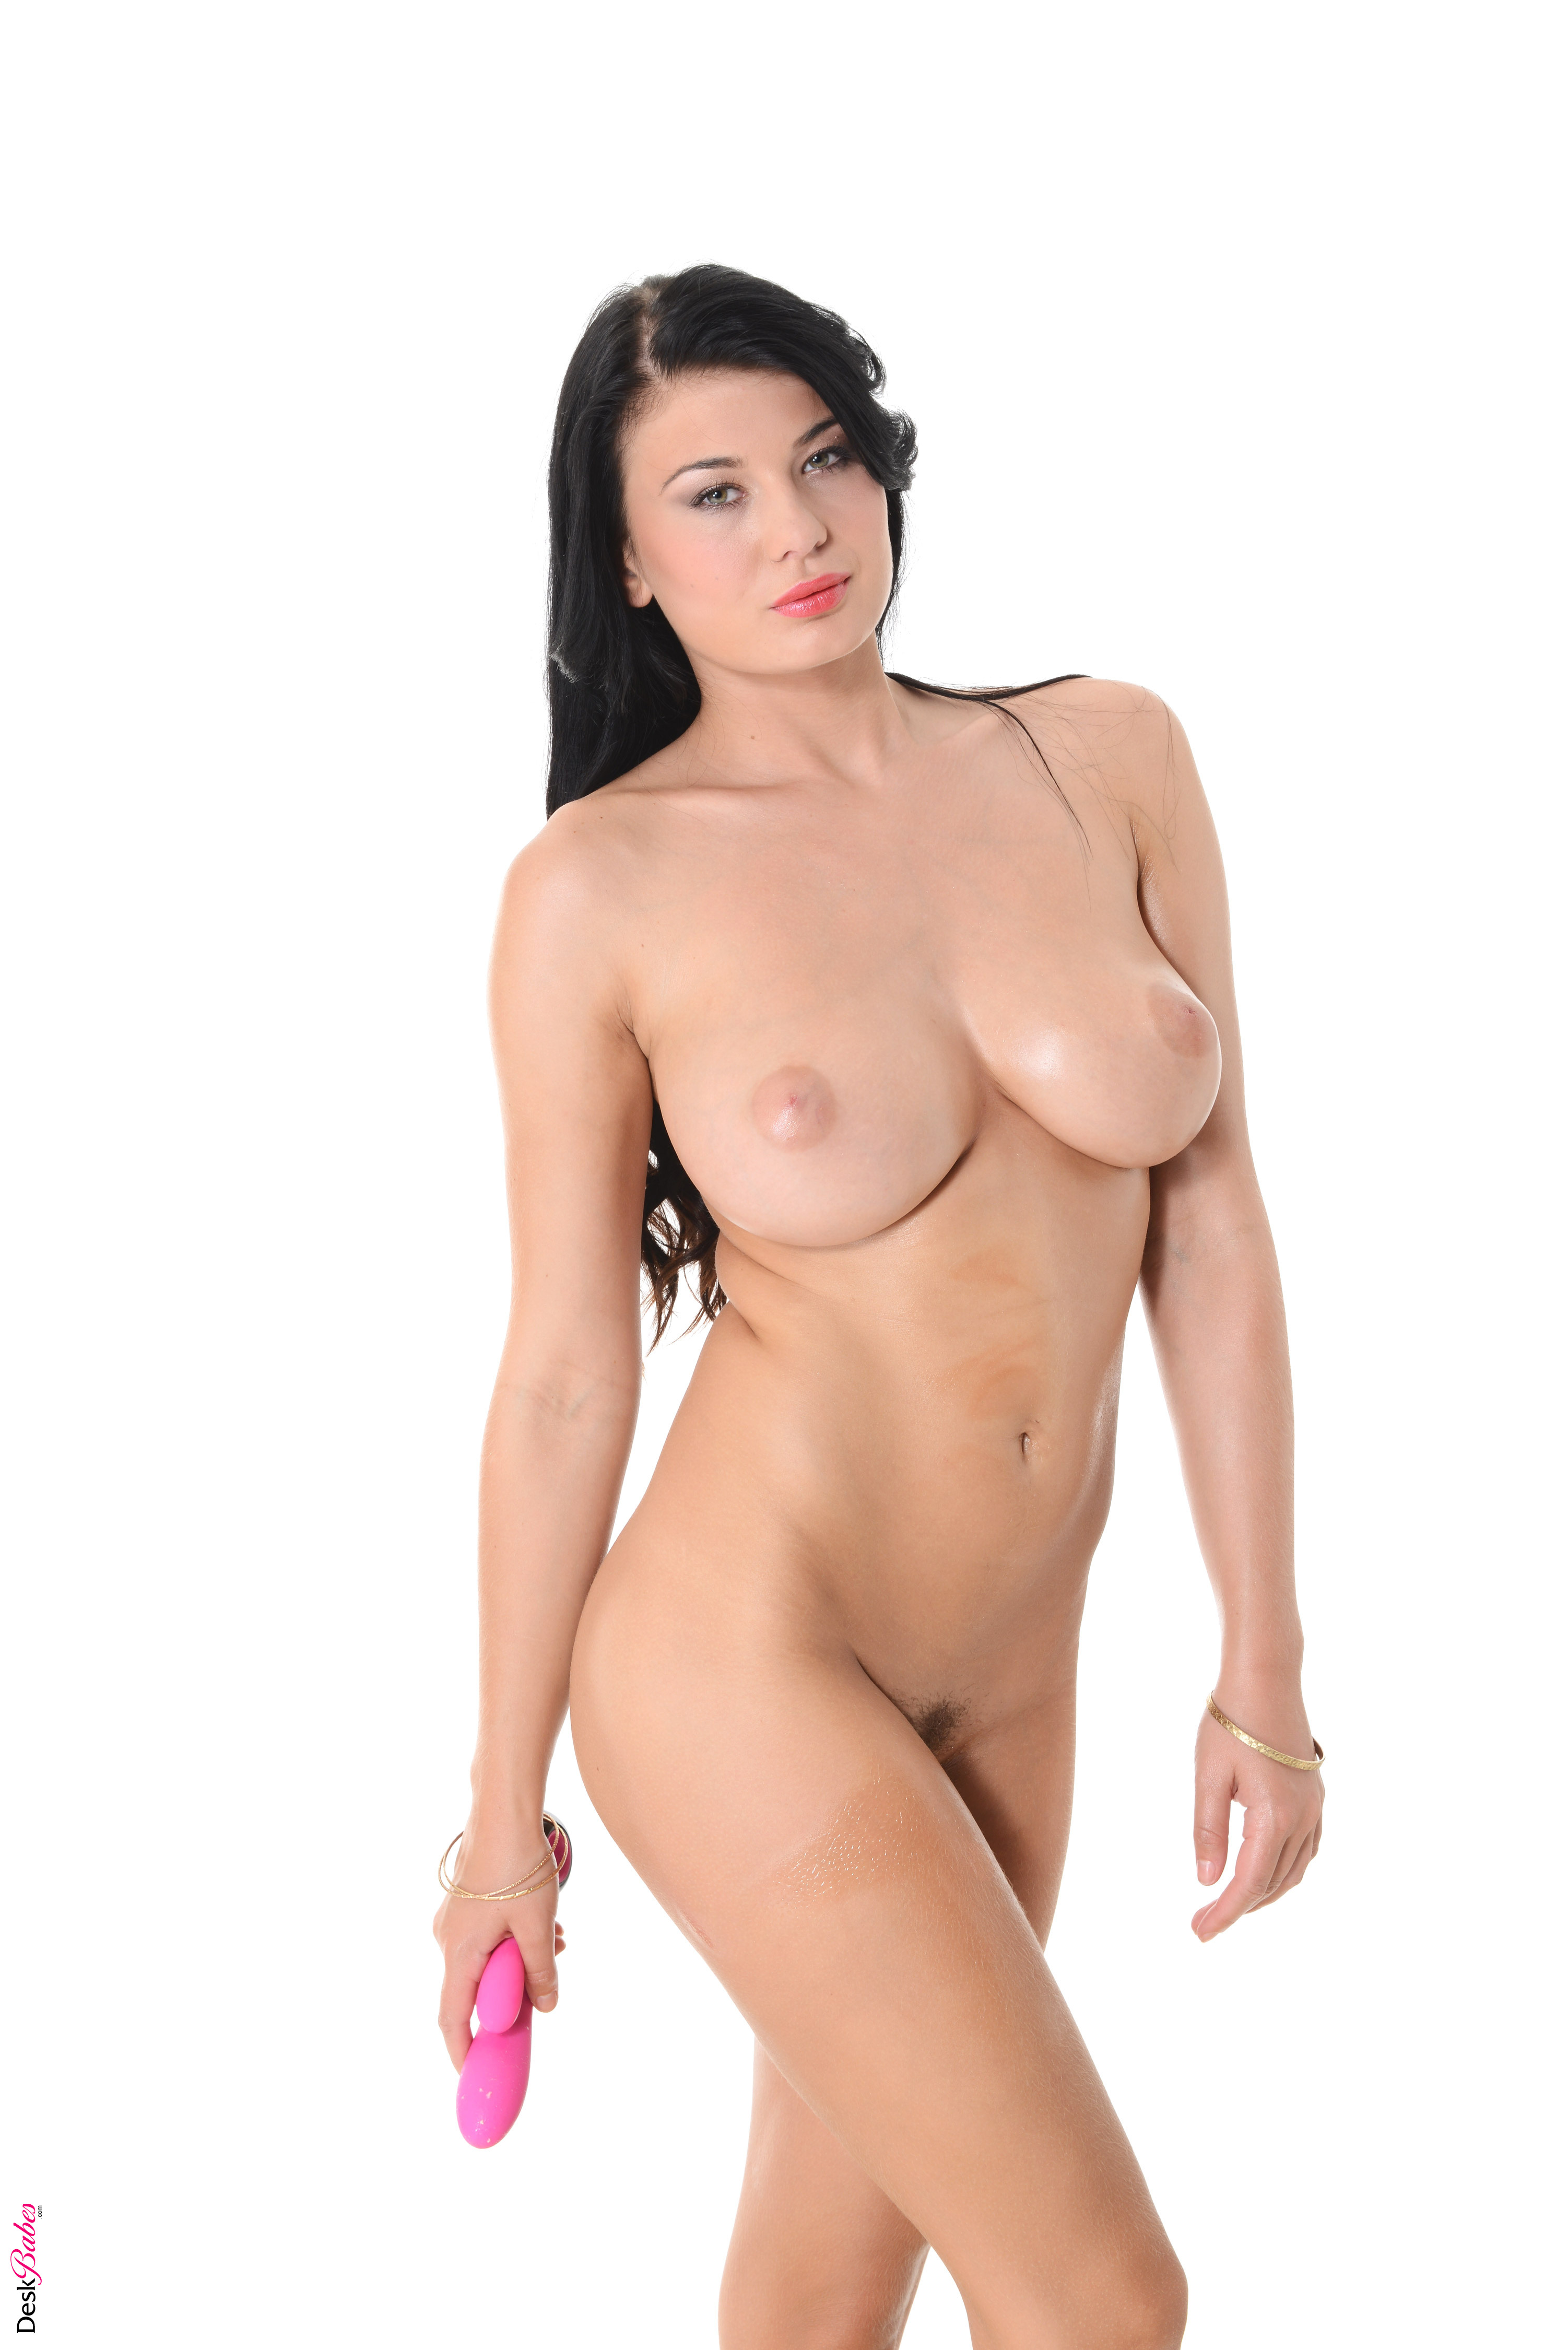 """""""Lucy Li"""" - lucy download virtual girls, free babes stripping."""